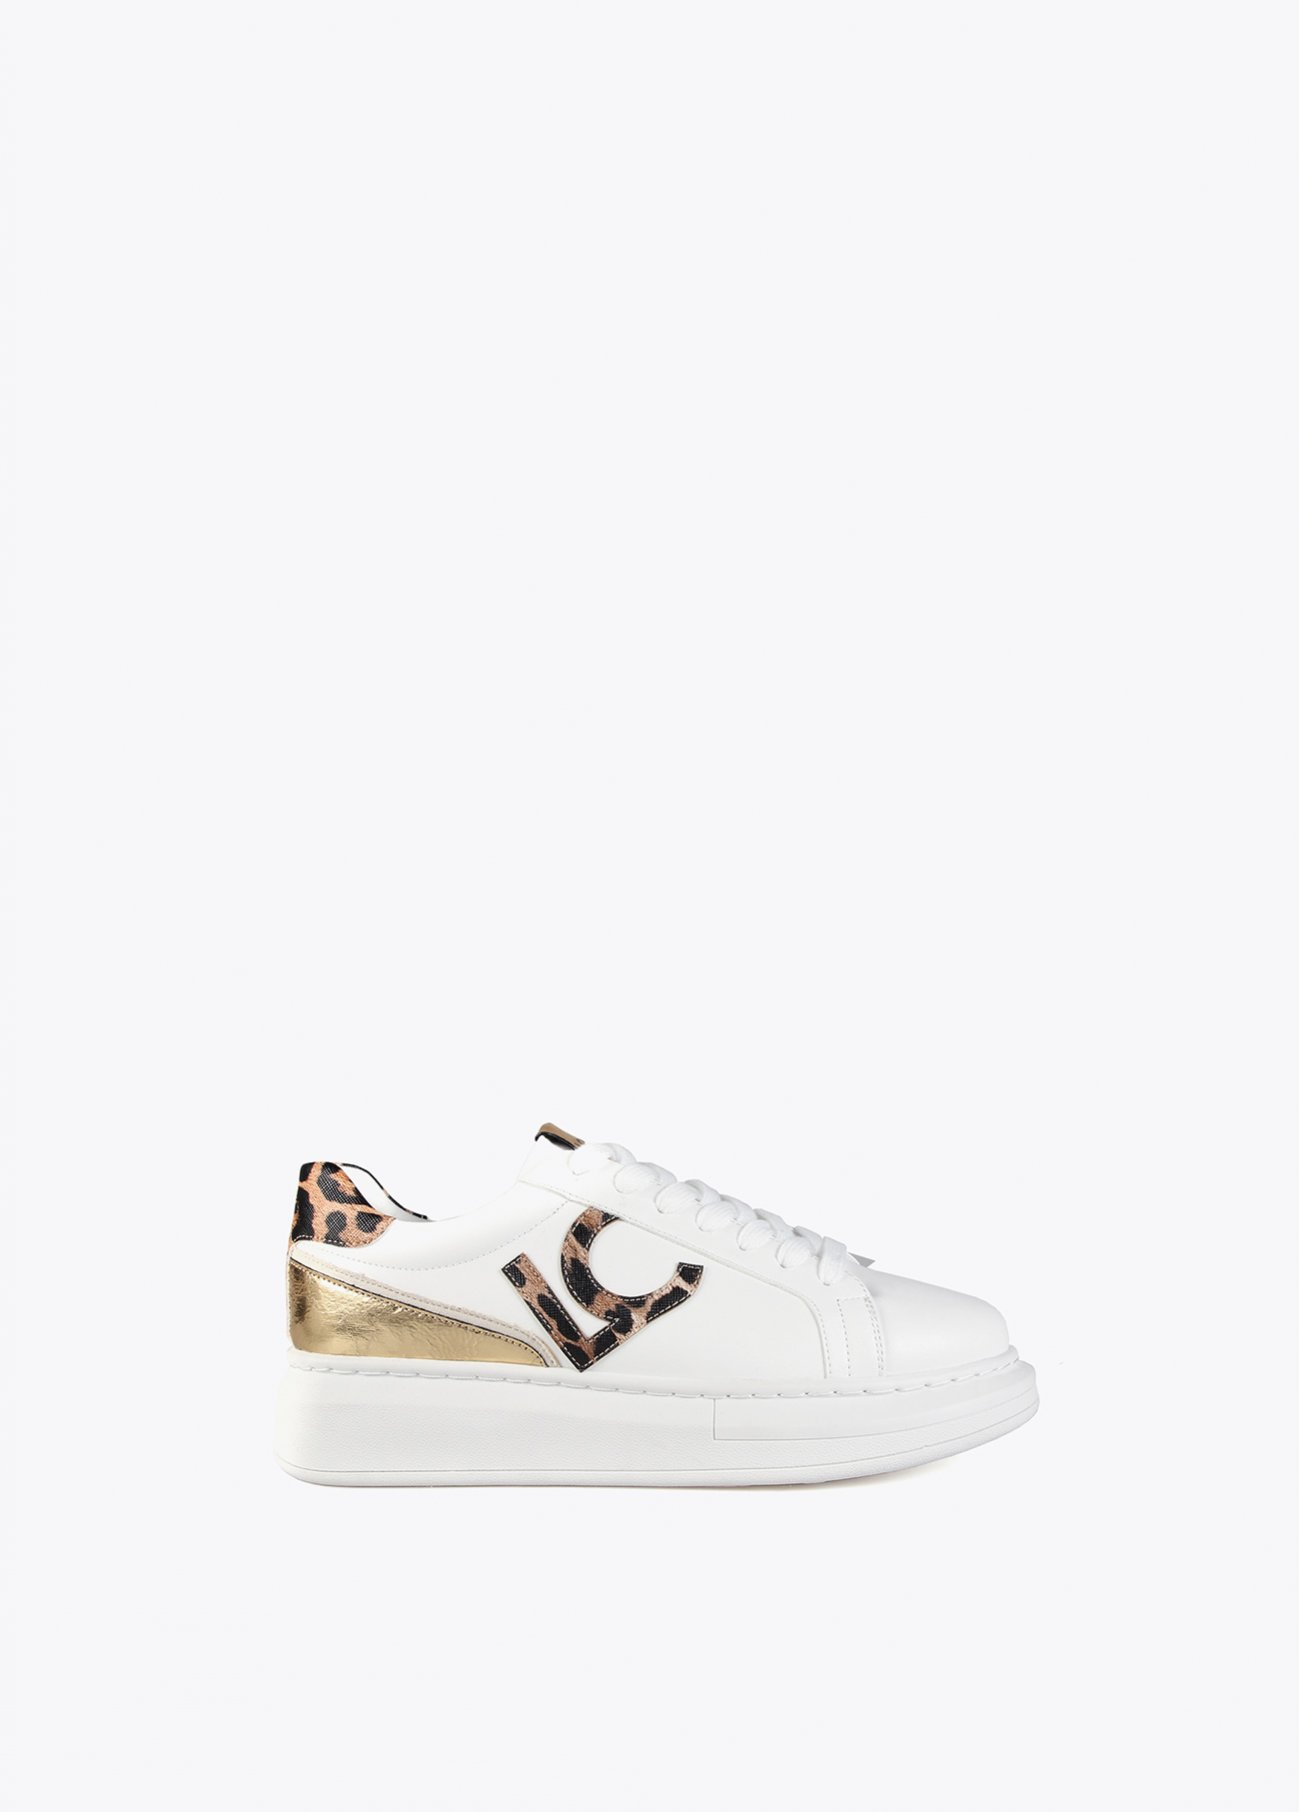 White sneakers with animal print detail